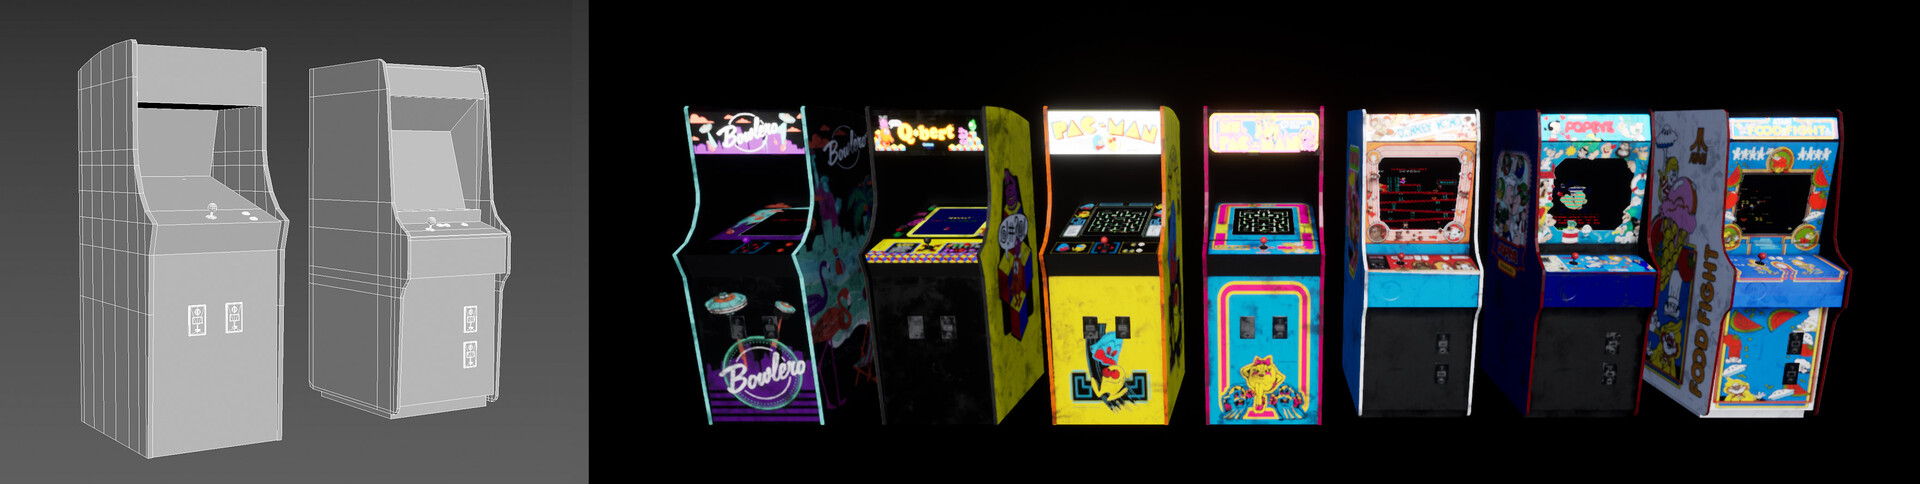 Arcades models wireframes and textures